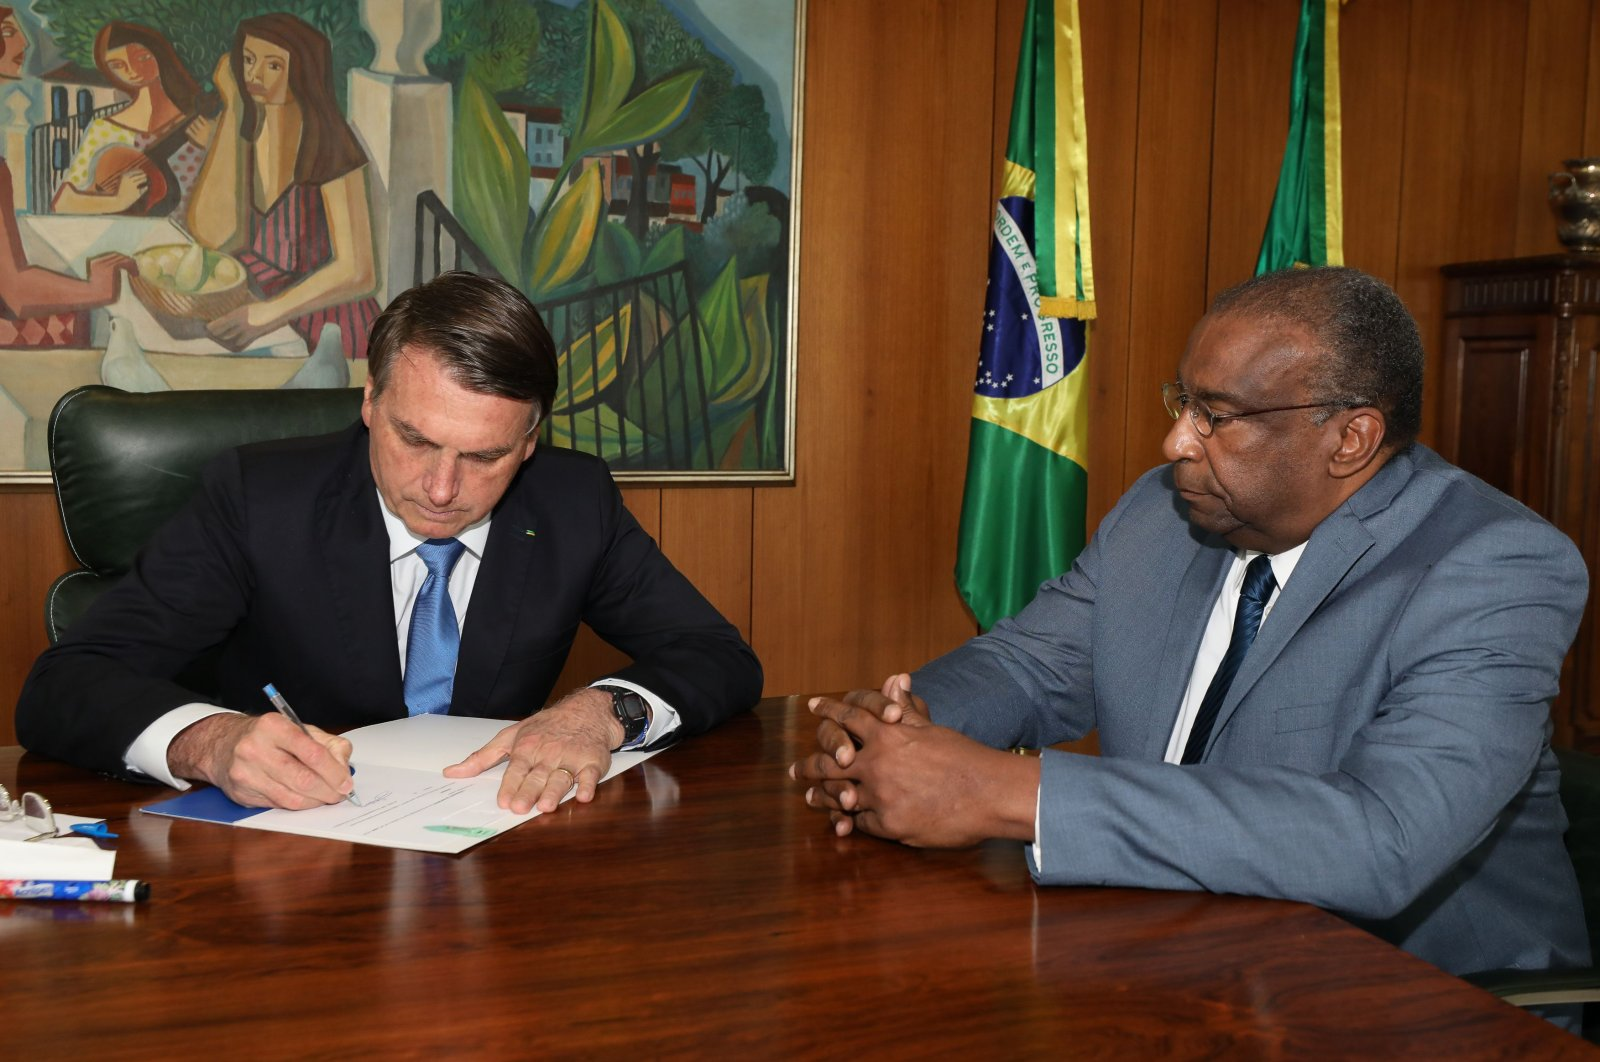 A handout photo released by the Brazilian Presidency press office shows President Jair Bolsonaro (L) and his new Minister of Education Carlos Alberto Decotelli, the first black minister in his Cabinet, at Planalto Palace in Brasilia, Brazil, June 26, 2020. (AFP Photo / Brazilian Presidency)